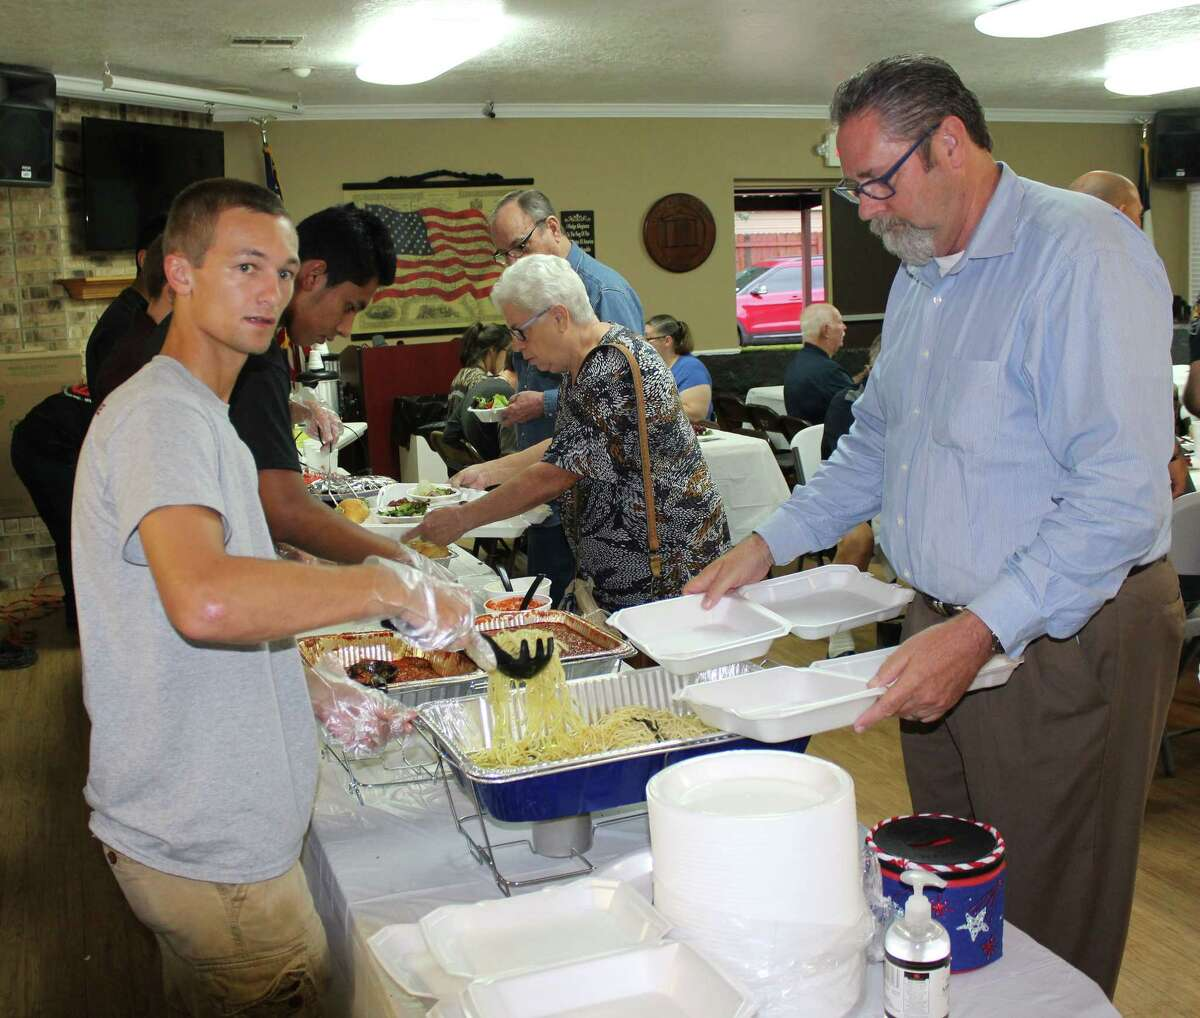 Members of the Roman Forest Police Explorers (left) serve the Roman Forest public at the National Night Out spaghetti dinner held at city hall. The Roman Forest Police Explorers are a group of Boy Scouts that are given opportunities to learn about law enforcement.